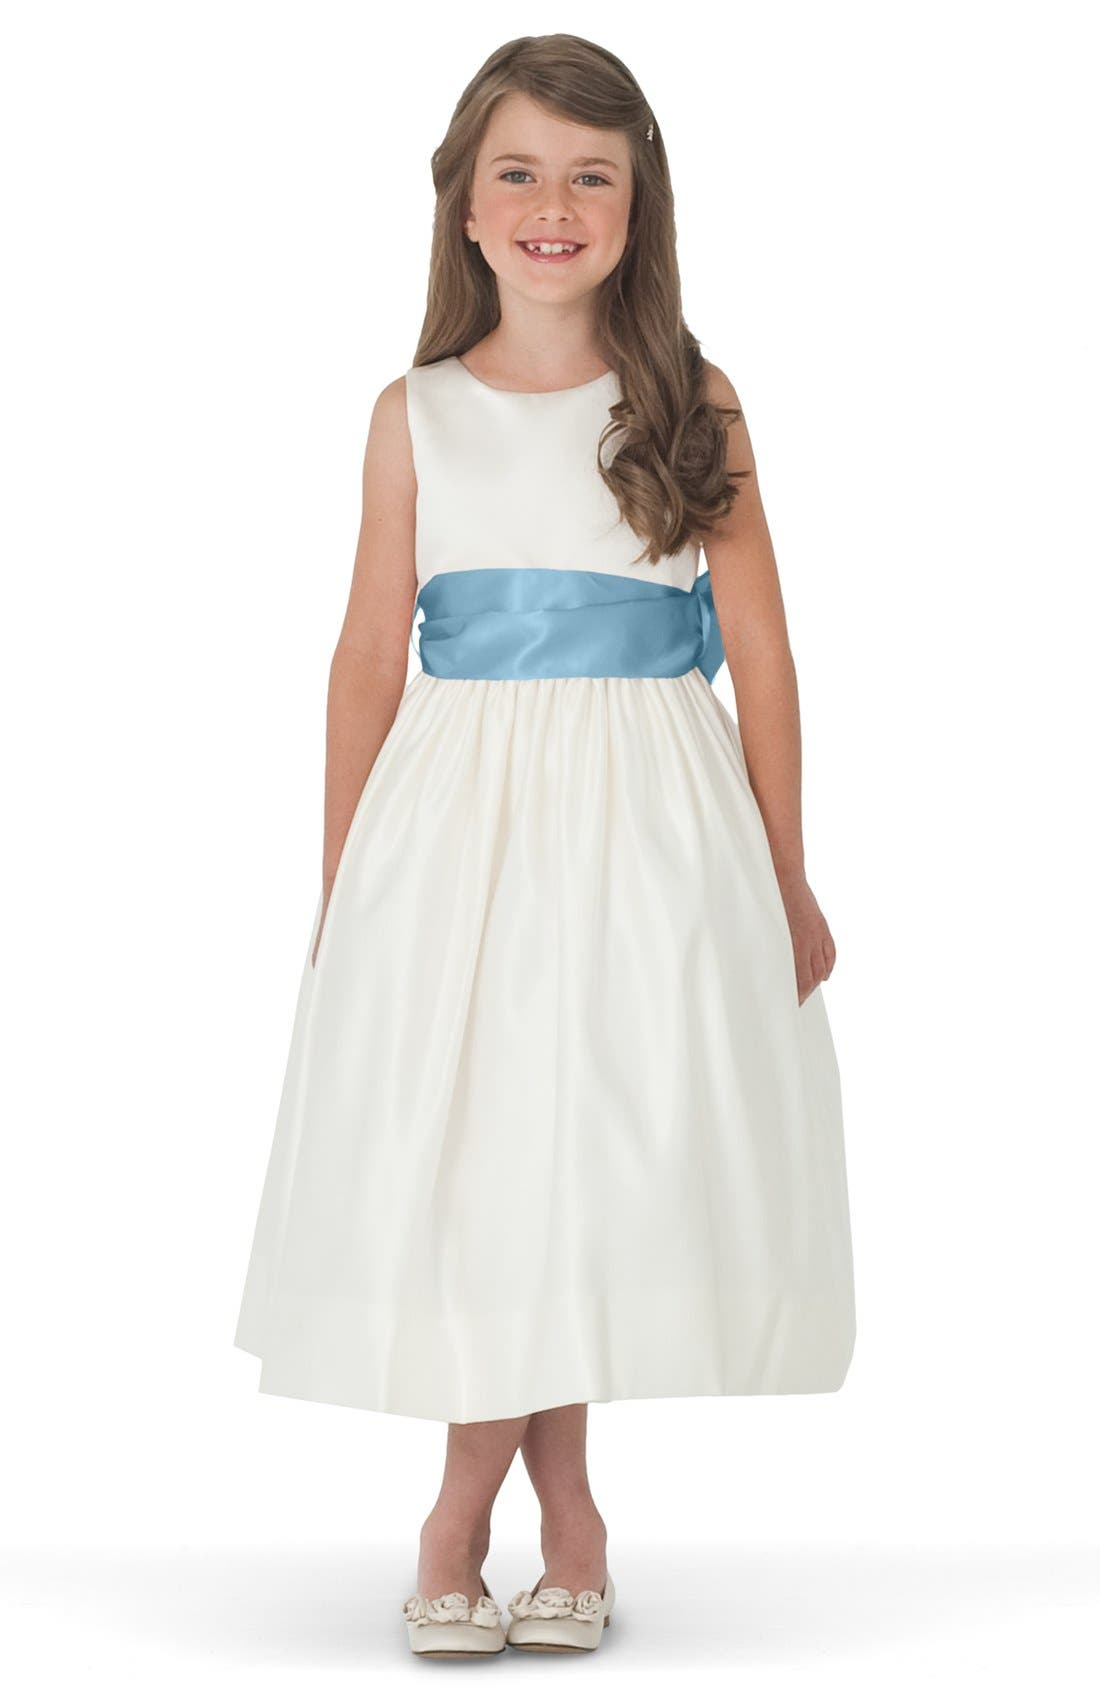 Sleeveless Satin Dress with Contrast Sash,                             Main thumbnail 1, color,                             Ivory/ capri